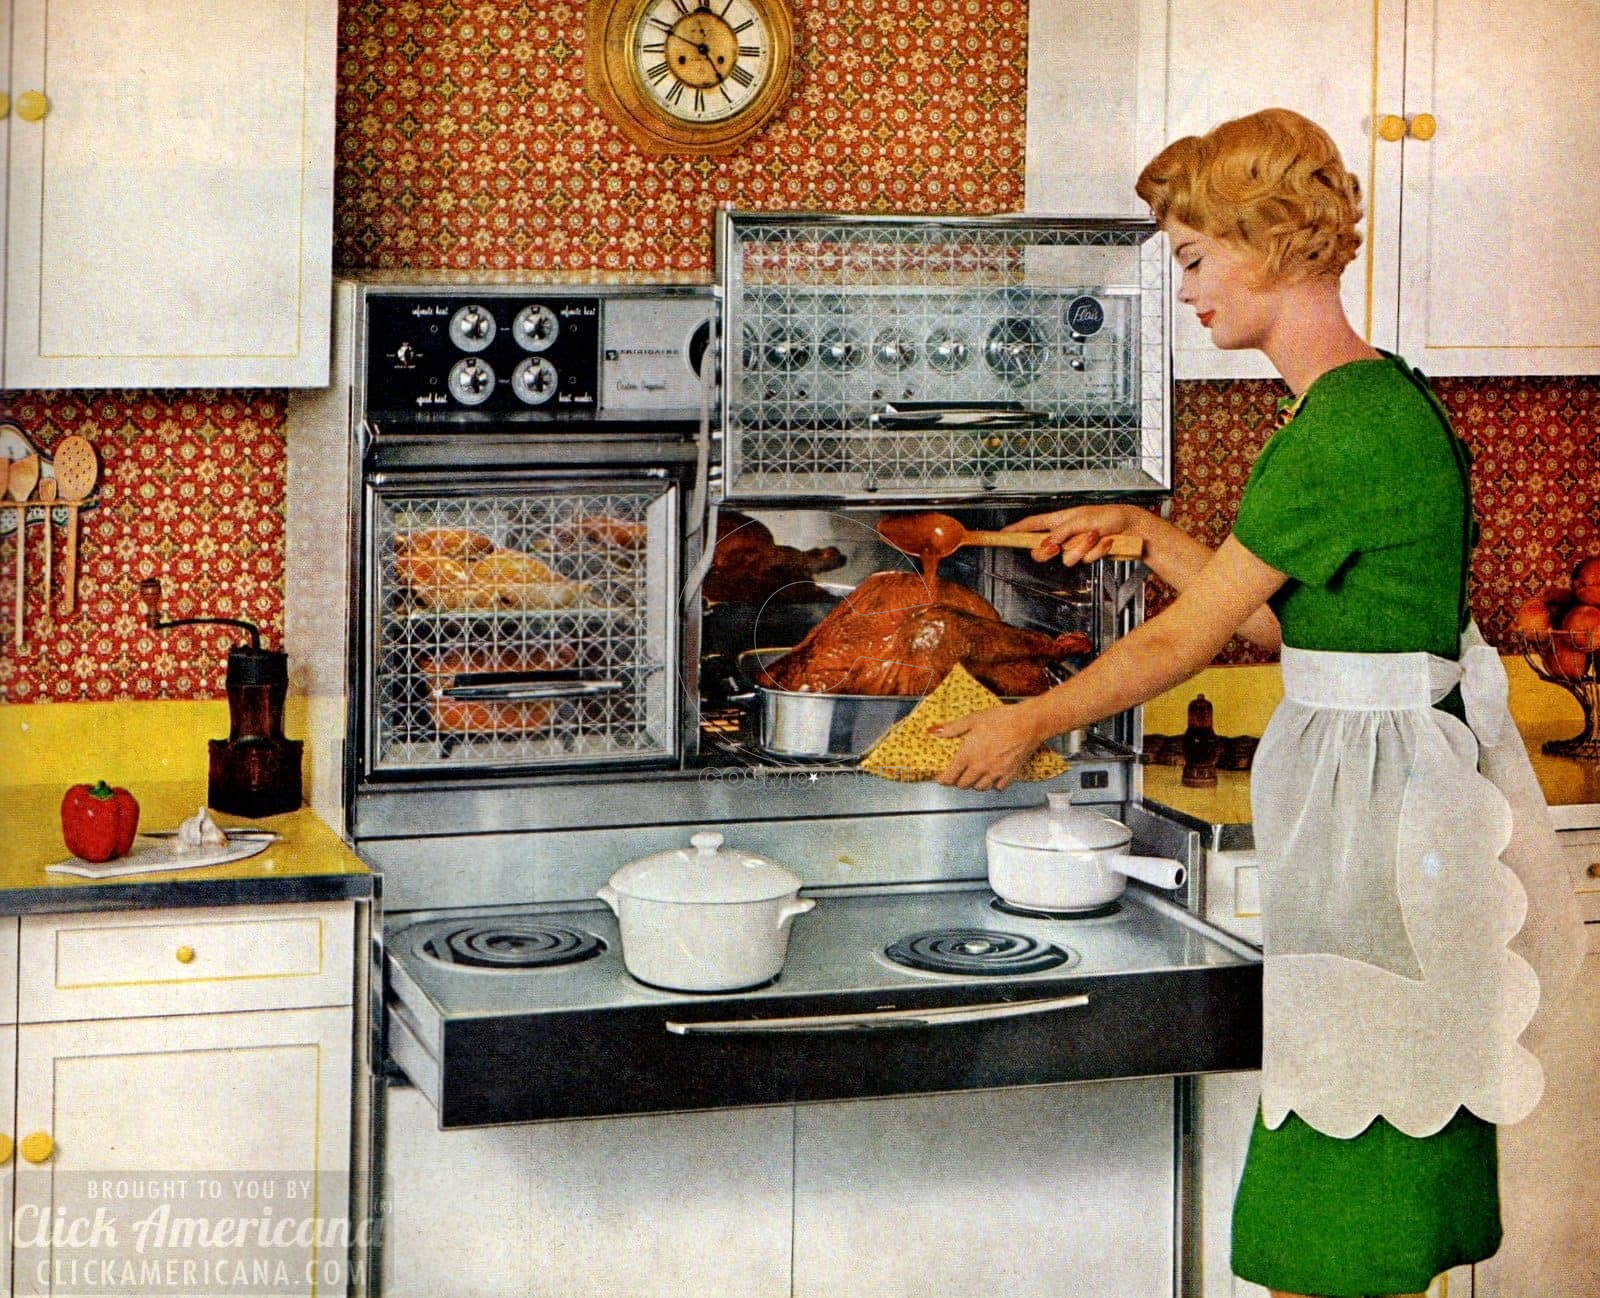 Vintage-kitchen-appliances-from-1961-Frigidaire-Flair-pull-out-range-stove-and-ovens-with-glass-doors-that-lift-up